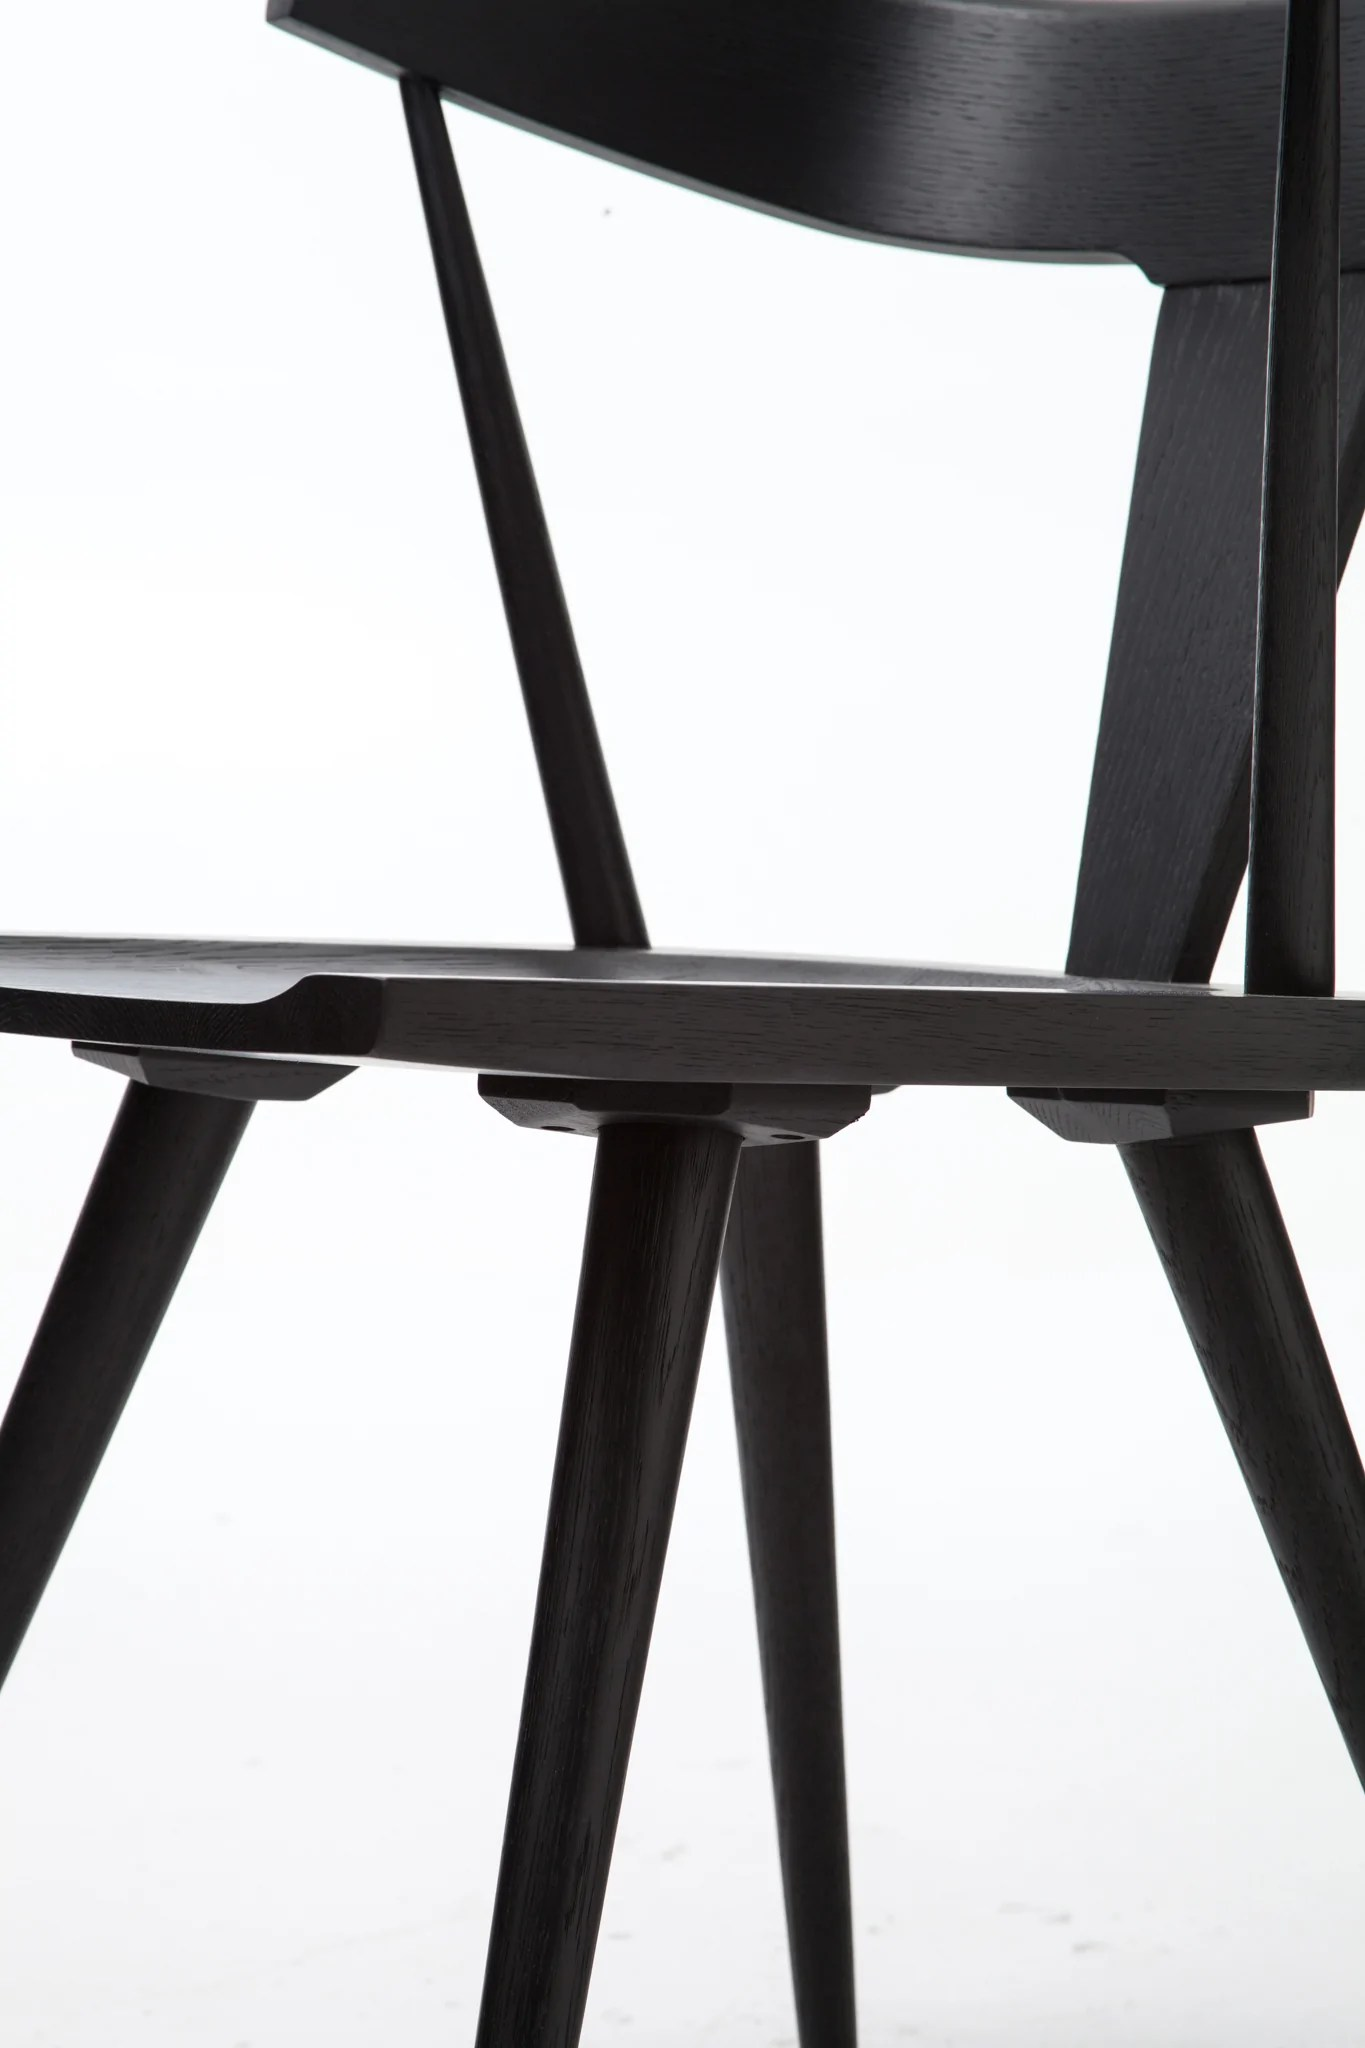 chair design bd casters for office chairs on hardwood floor ripley dining in black oak by studio